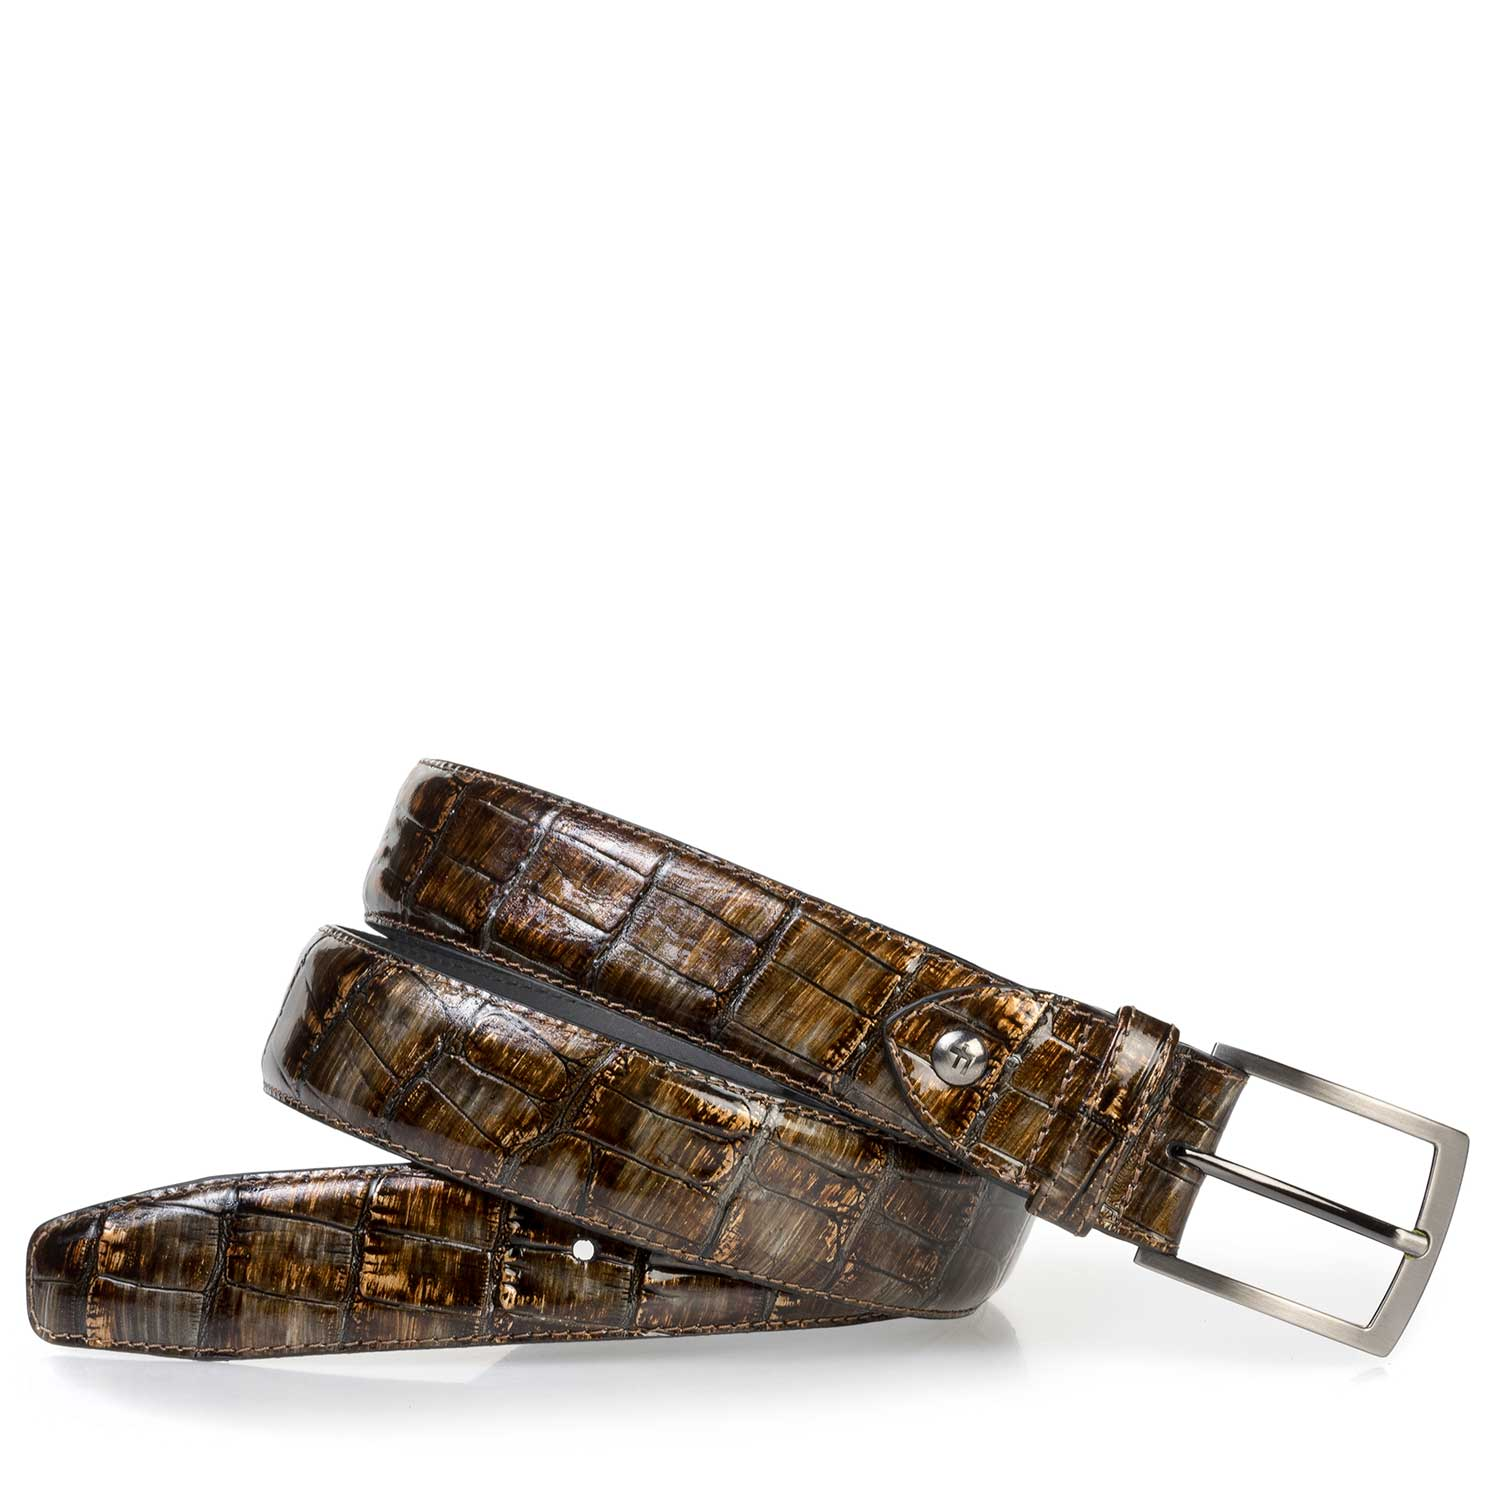 75200/06 - Cognac-colored patent leather belt with a croco print